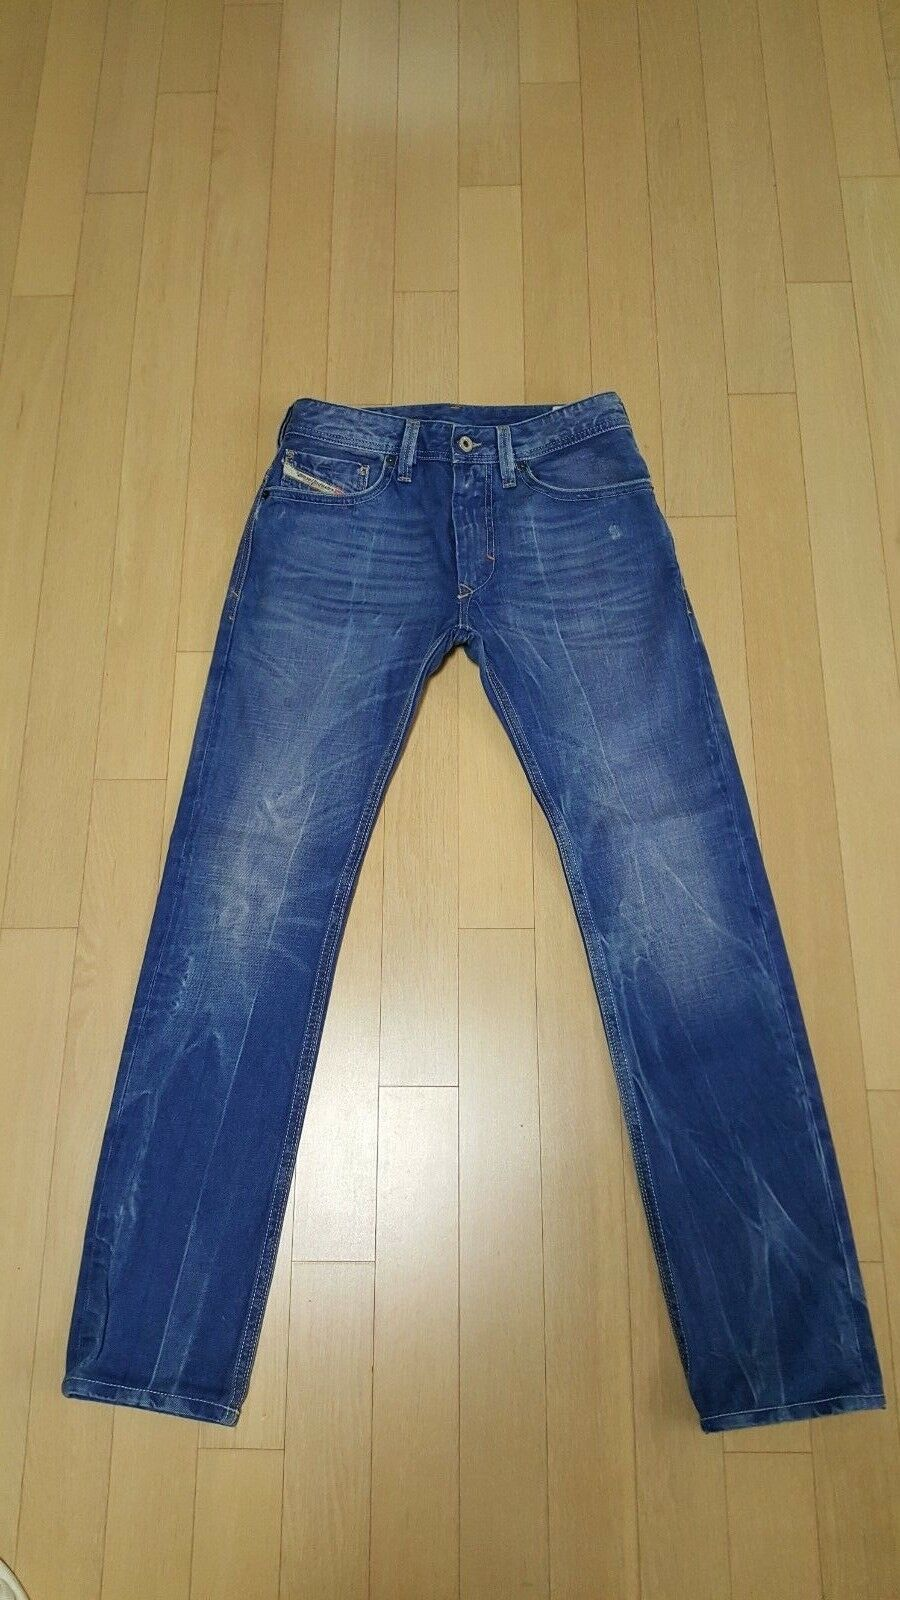 DIESEL THANAZ 8pi JEANS  Size 29  100% Authentic